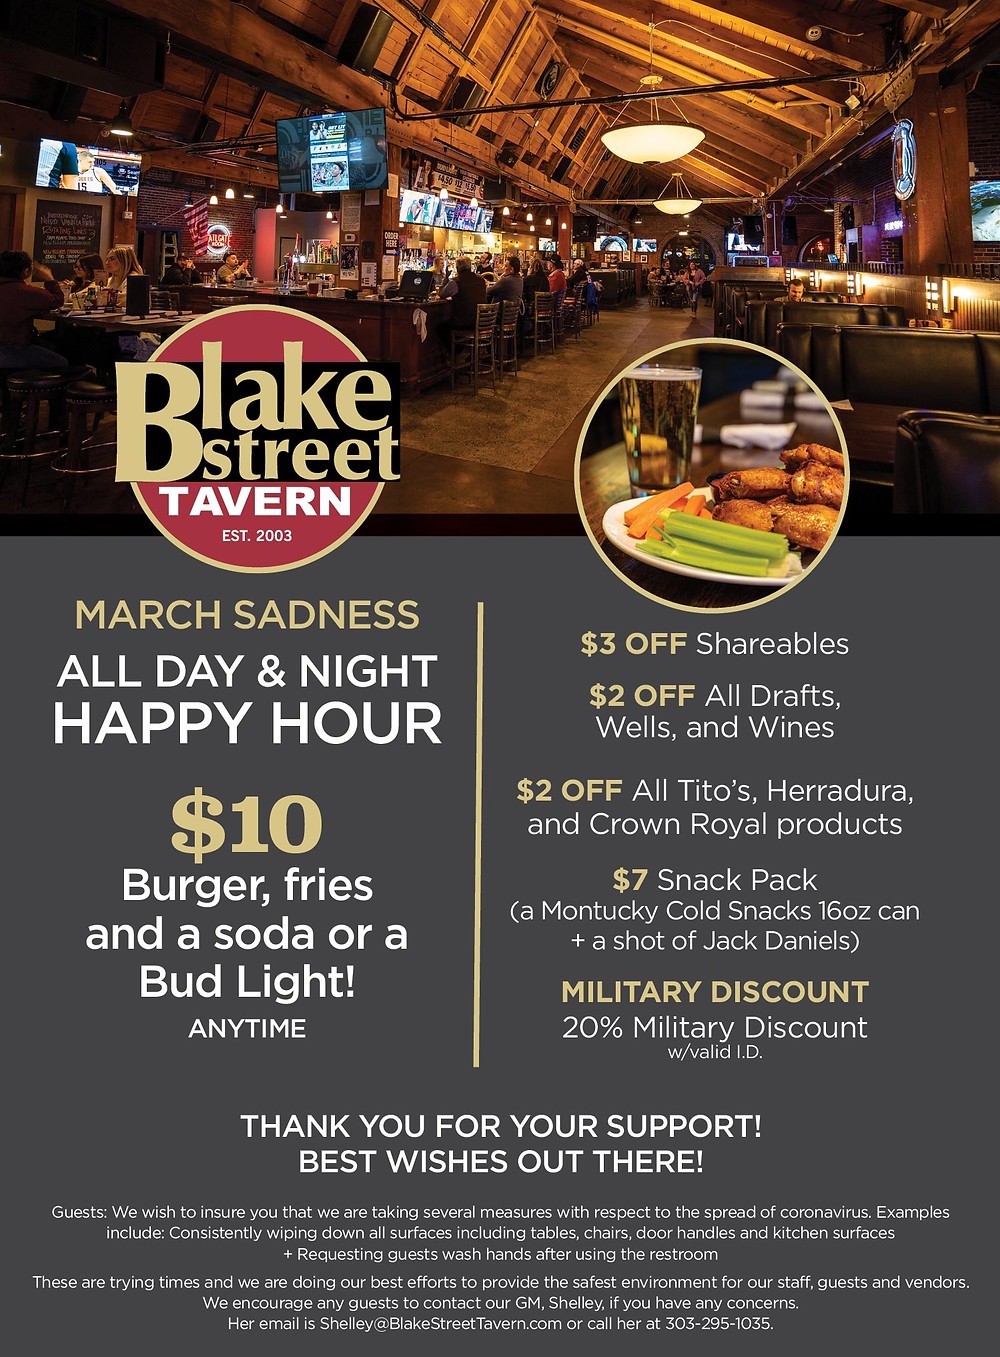 All Day & Night Happy Hour at Blake Street for March Sadness